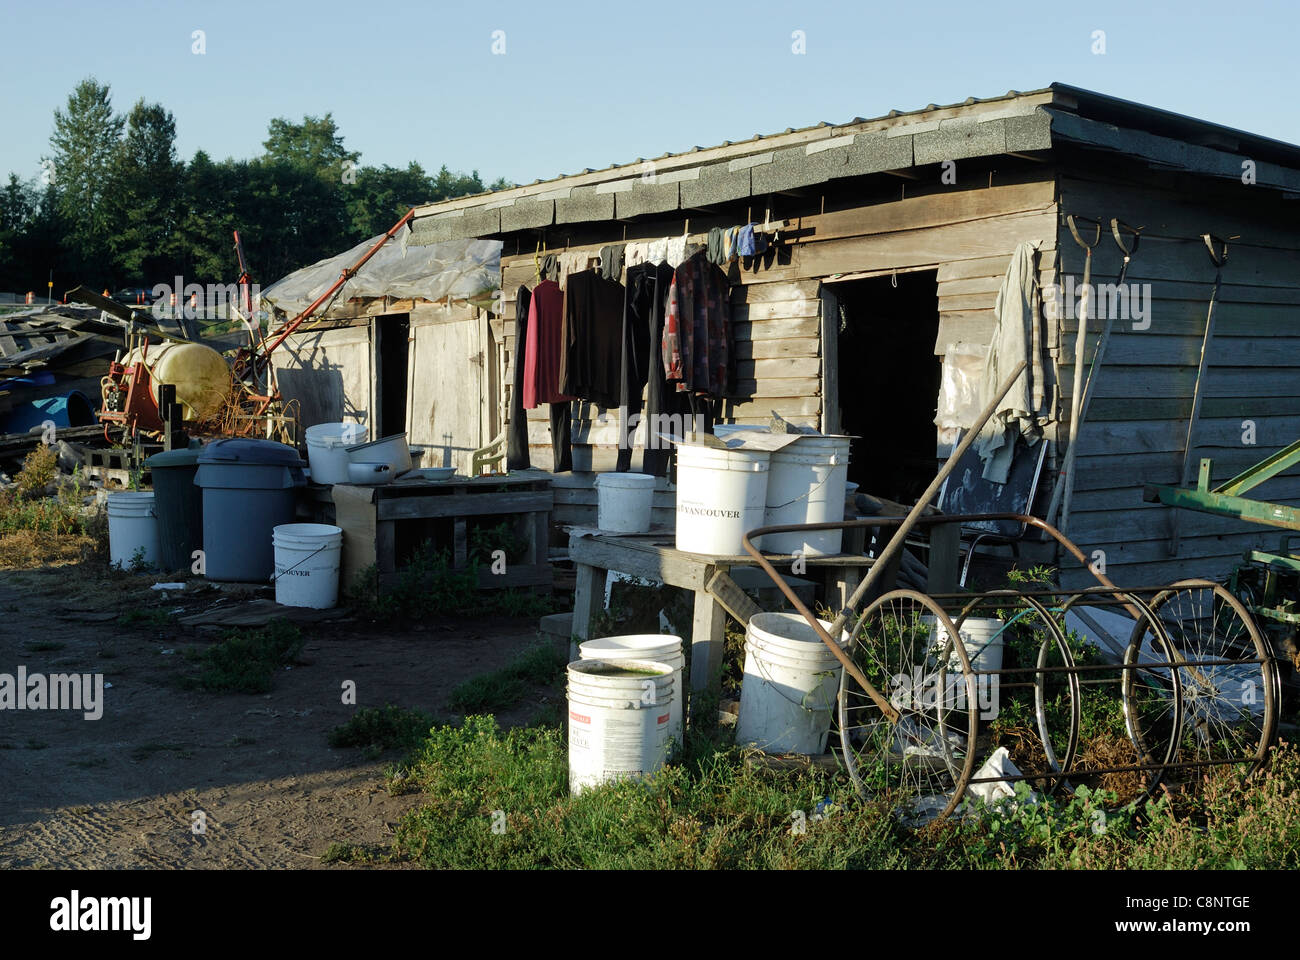 Old shack on a farm littered with equipment and pails, used for storage and to accommodate hired labour. - Stock Image